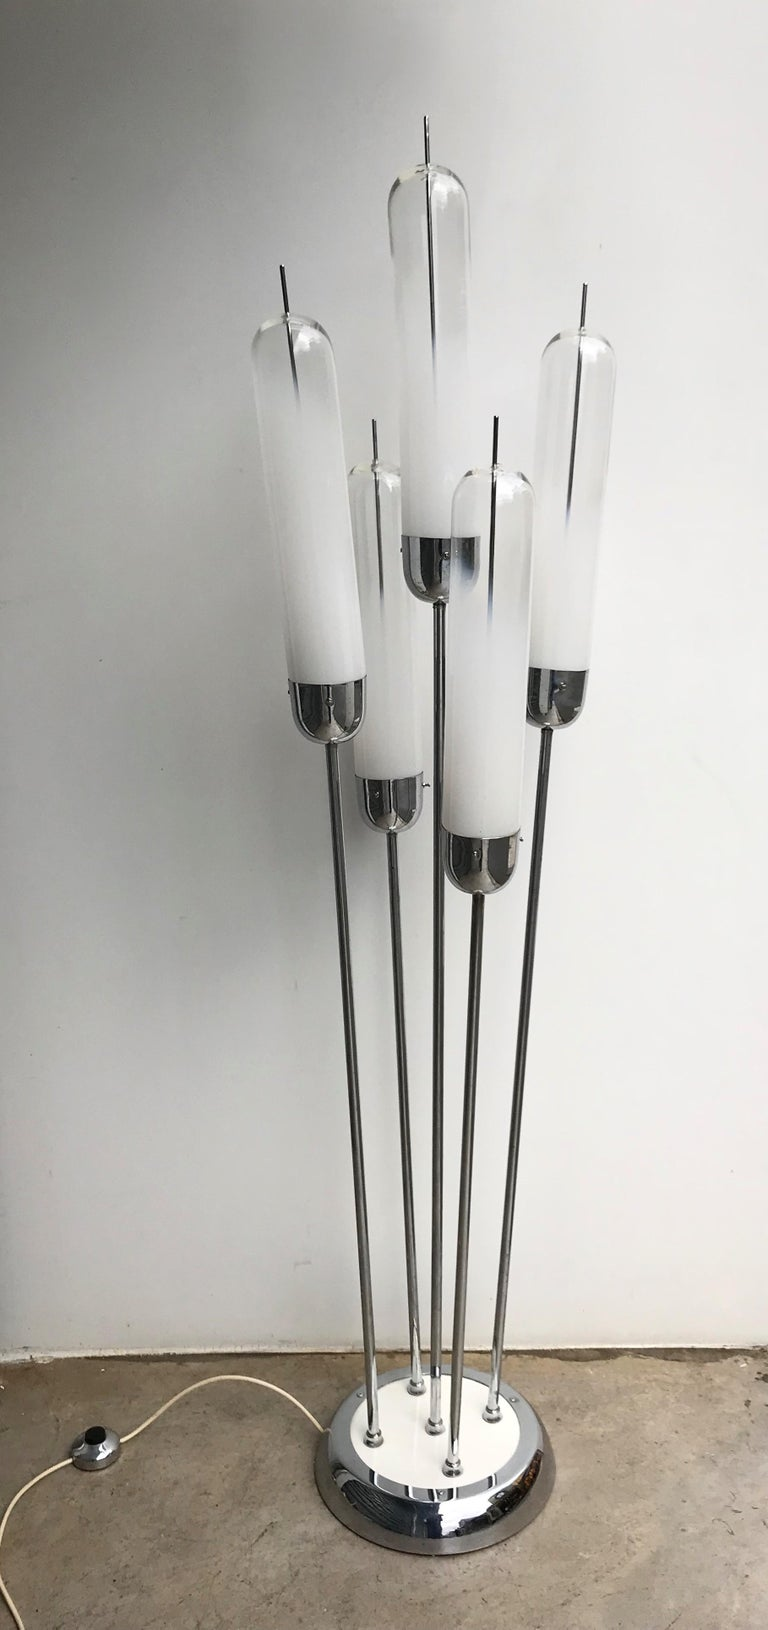 Reed Floor Lamp by Mazzega Murano Glass, Italy, 1970s For Sale 1